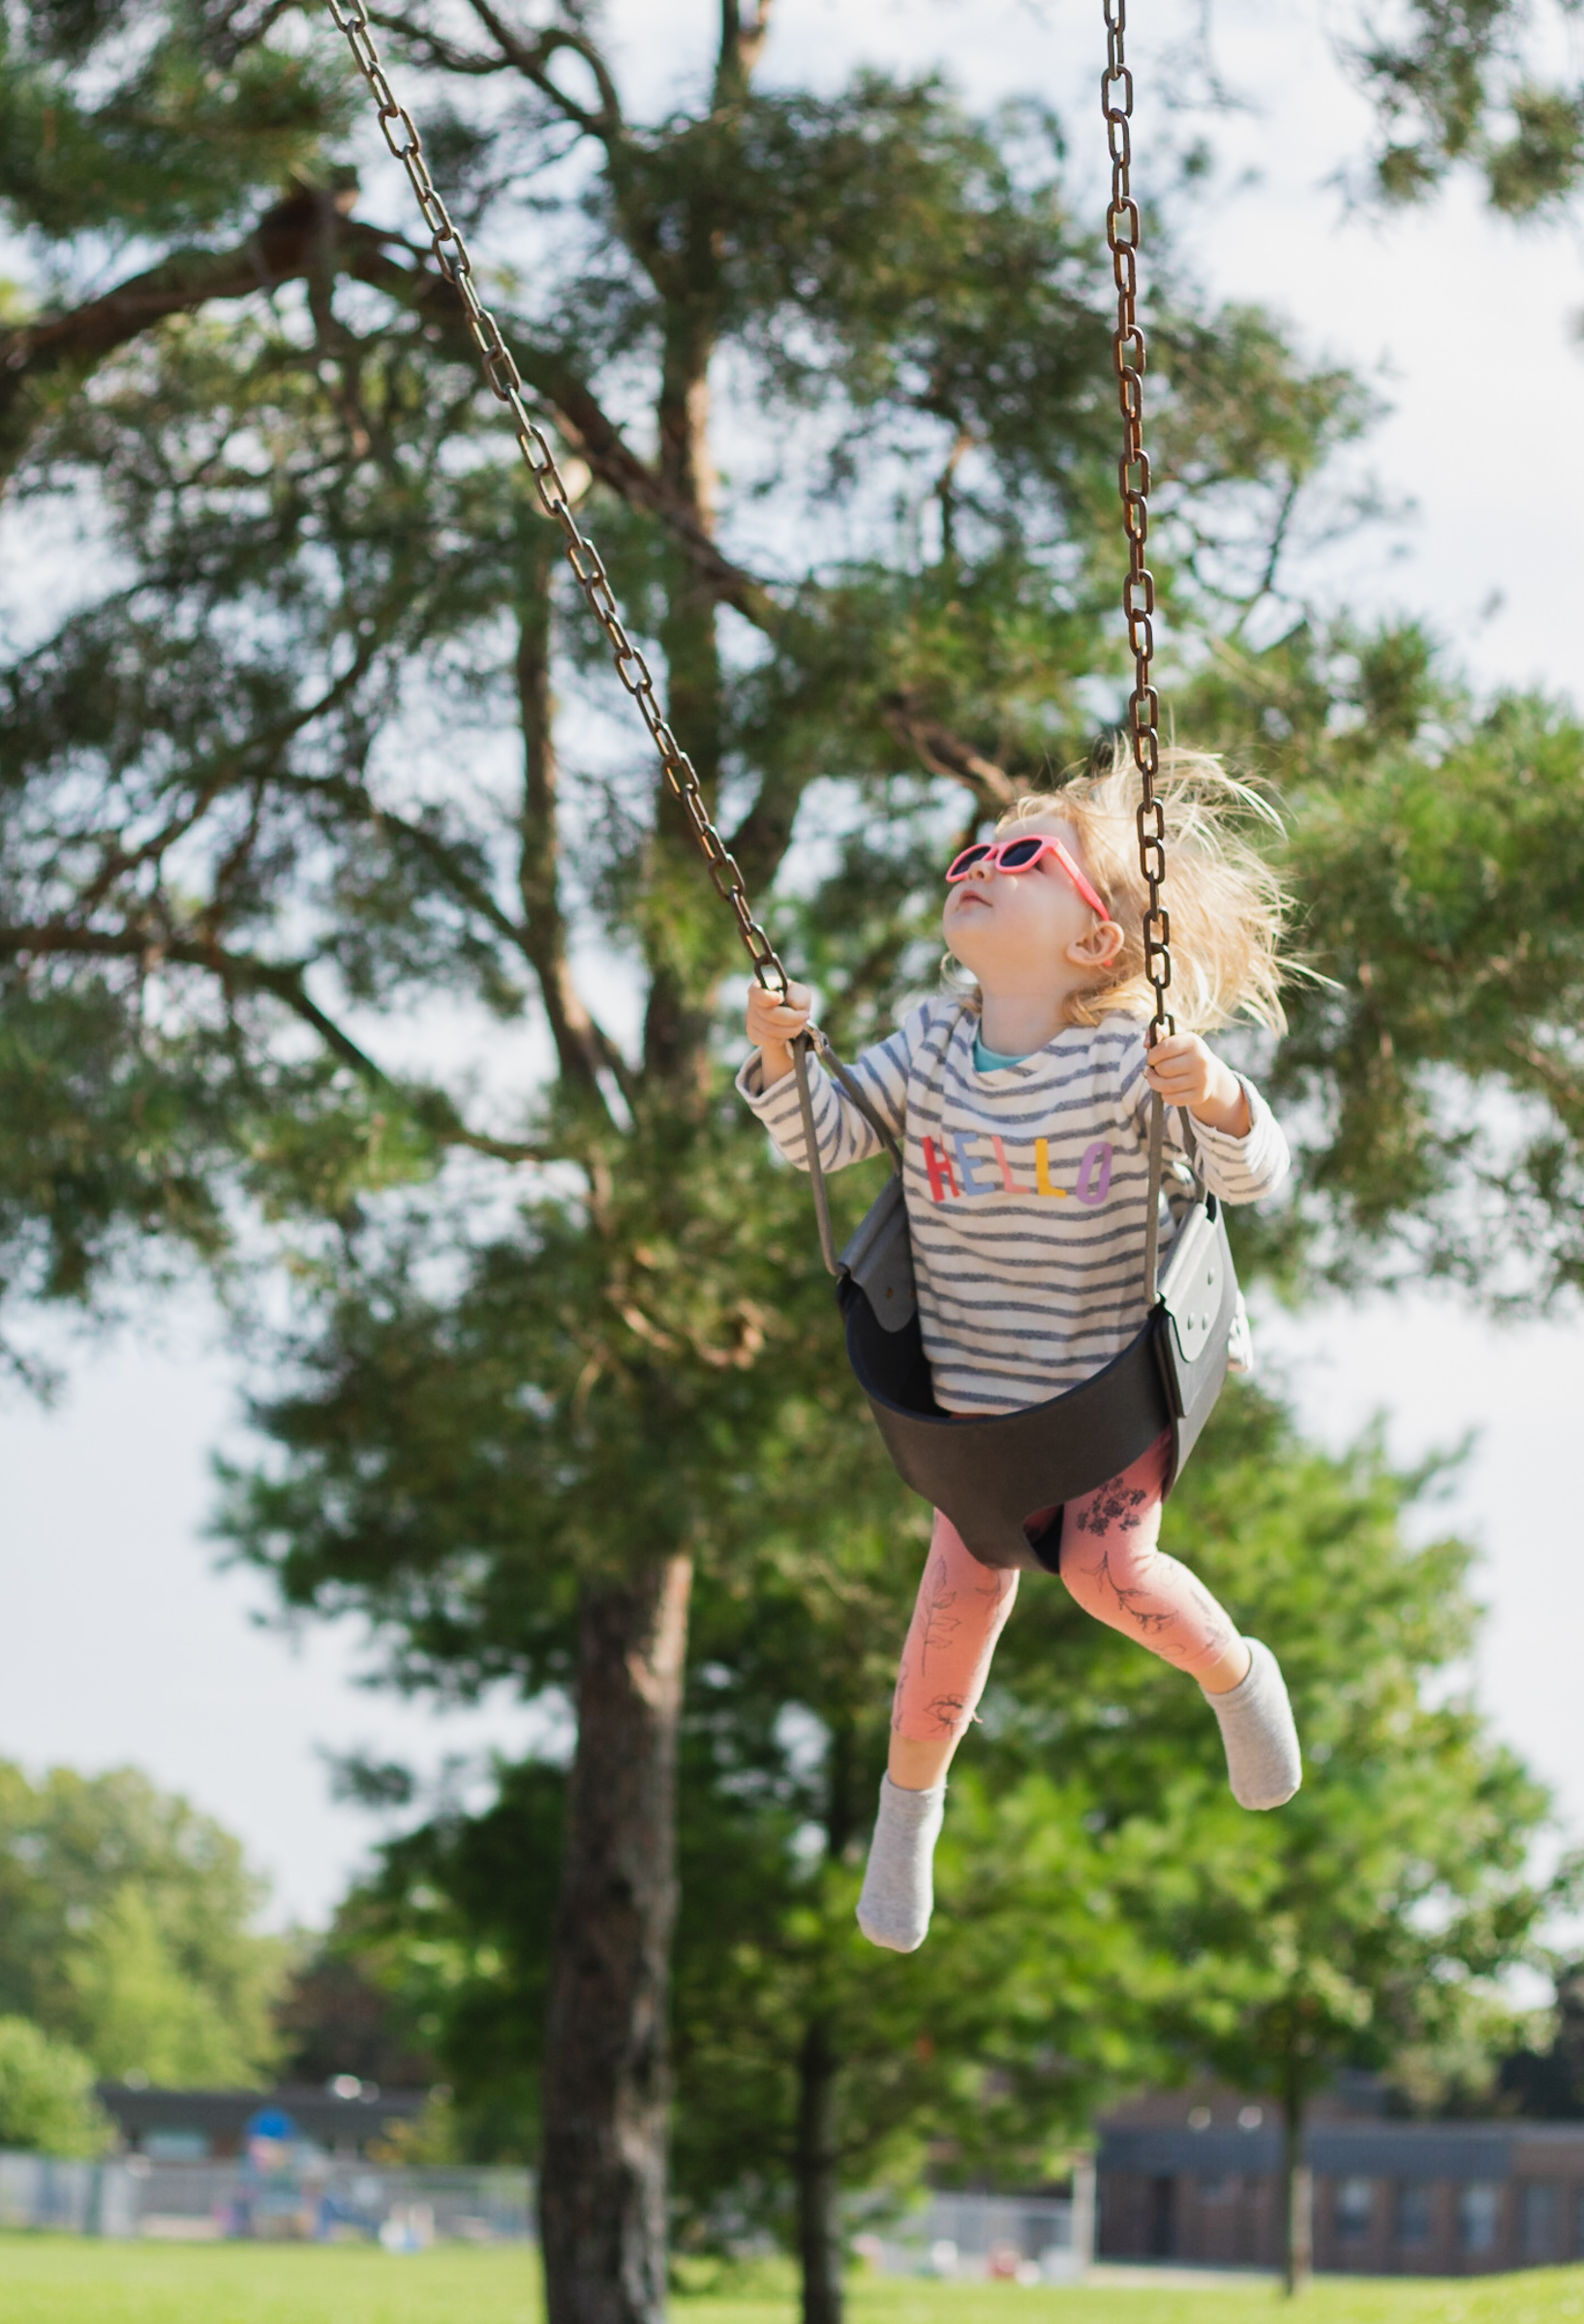 portrait of child swinging on a swing